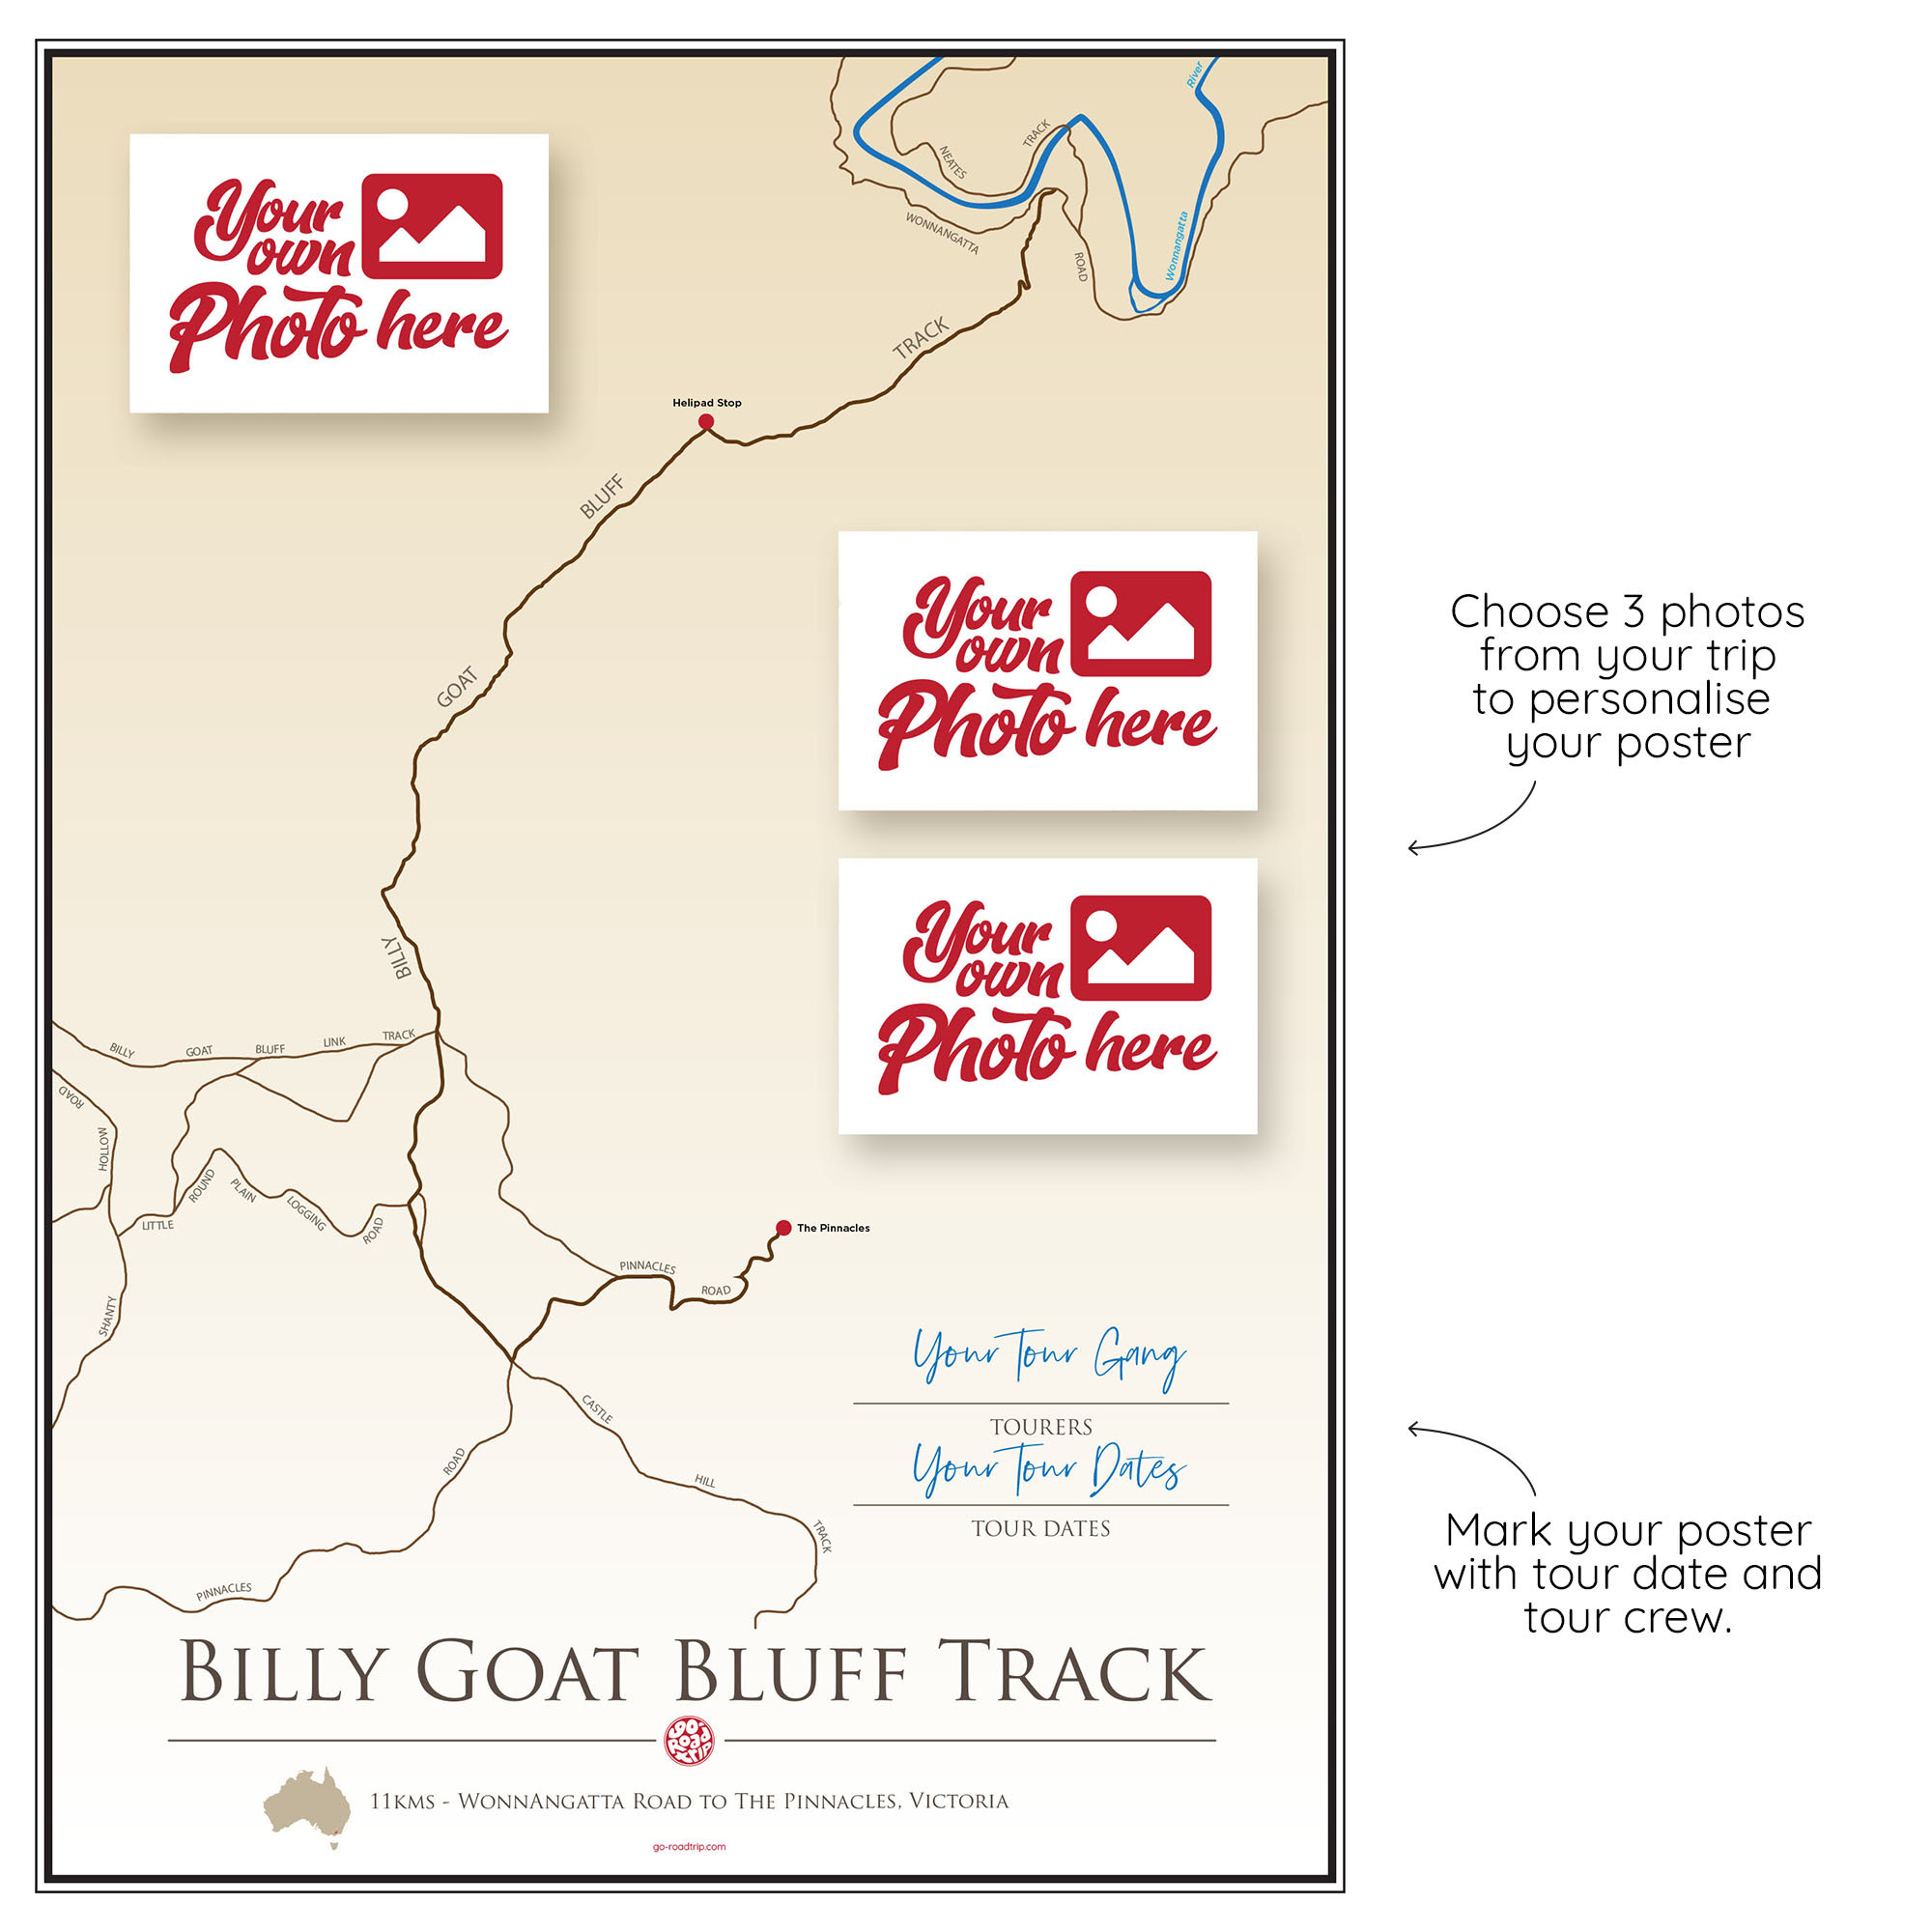 ICONIC TRACK: Billy Goat Bluff Track Personal Poster